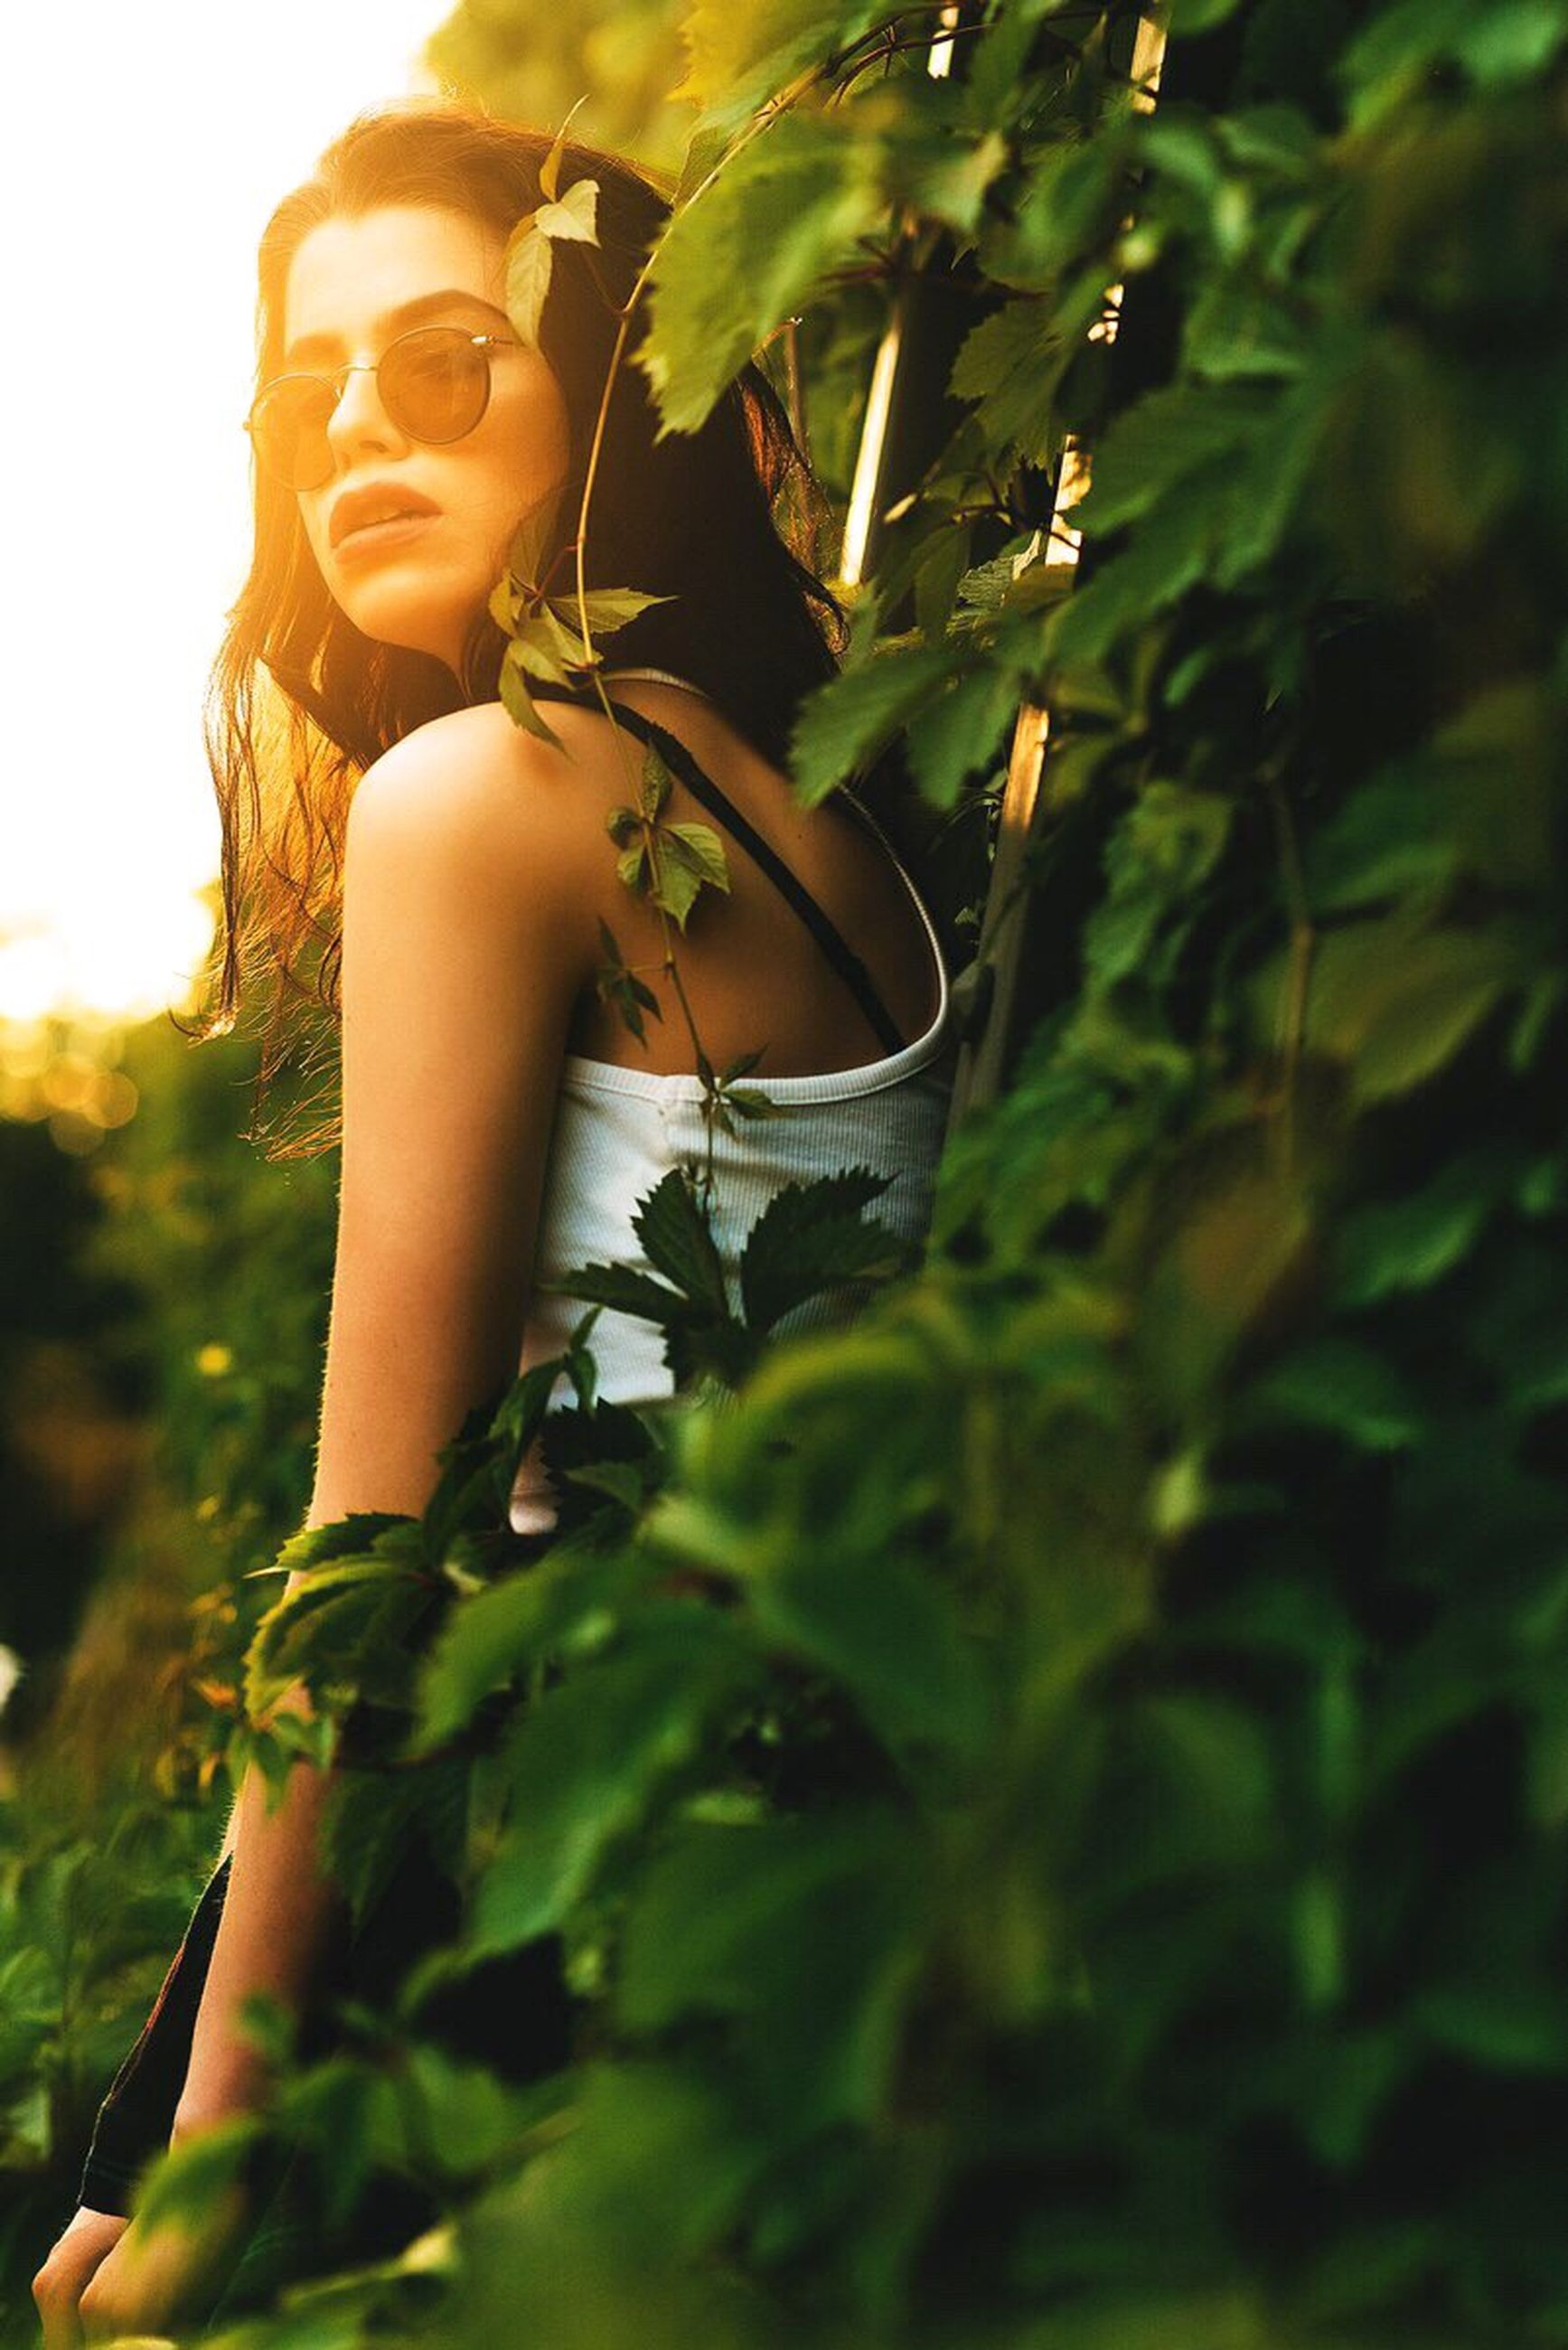 lifestyles, leaf, young adult, growth, plant, leisure activity, freshness, young women, focus on foreground, green color, close-up, holding, tree, standing, nature, sunlight, casual clothing, front view